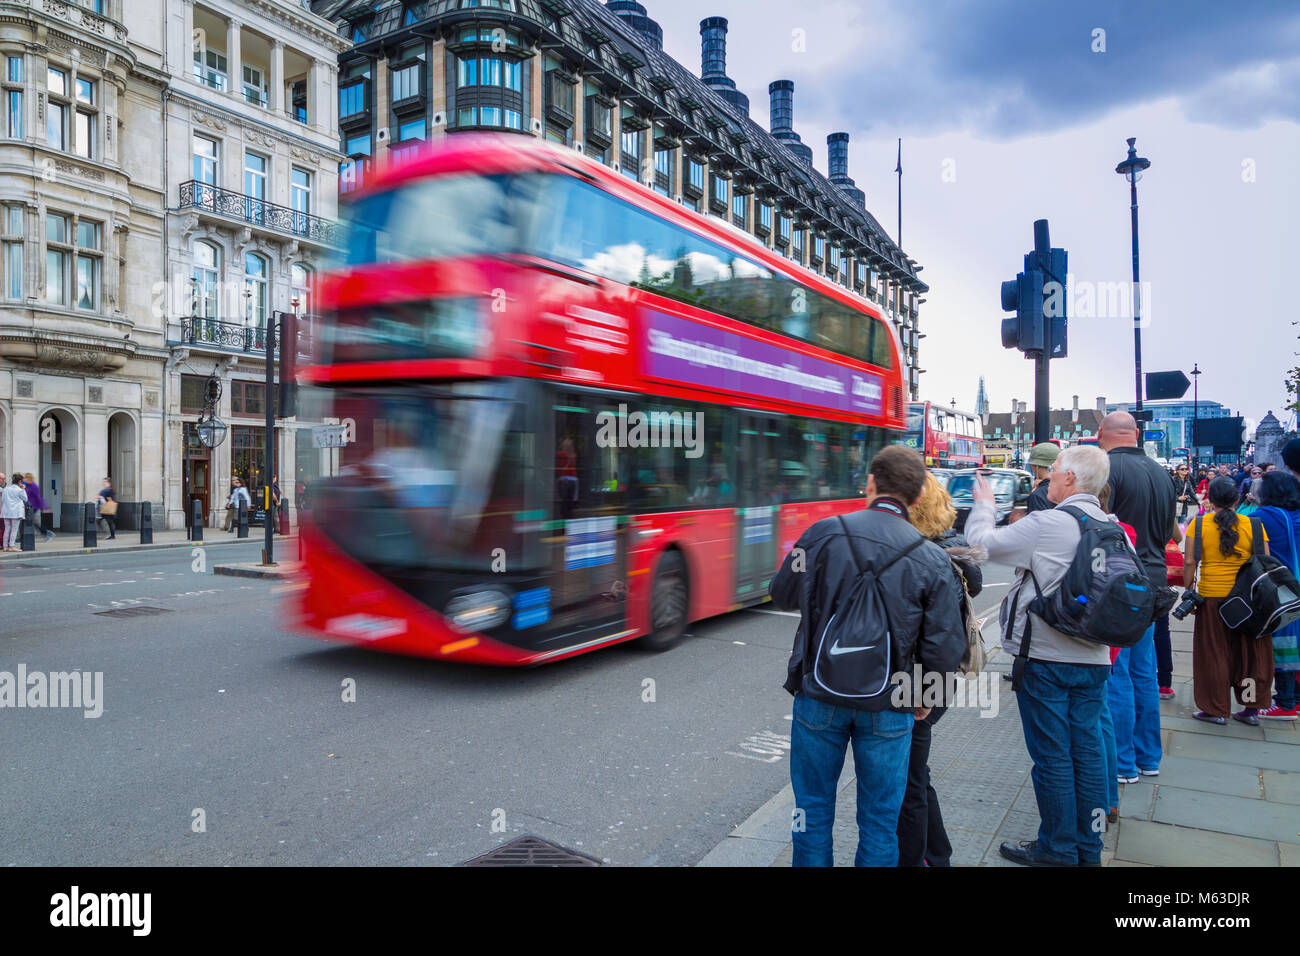 A new Routemaster bus speeds past pedestrians in Westminster. - Stock Image